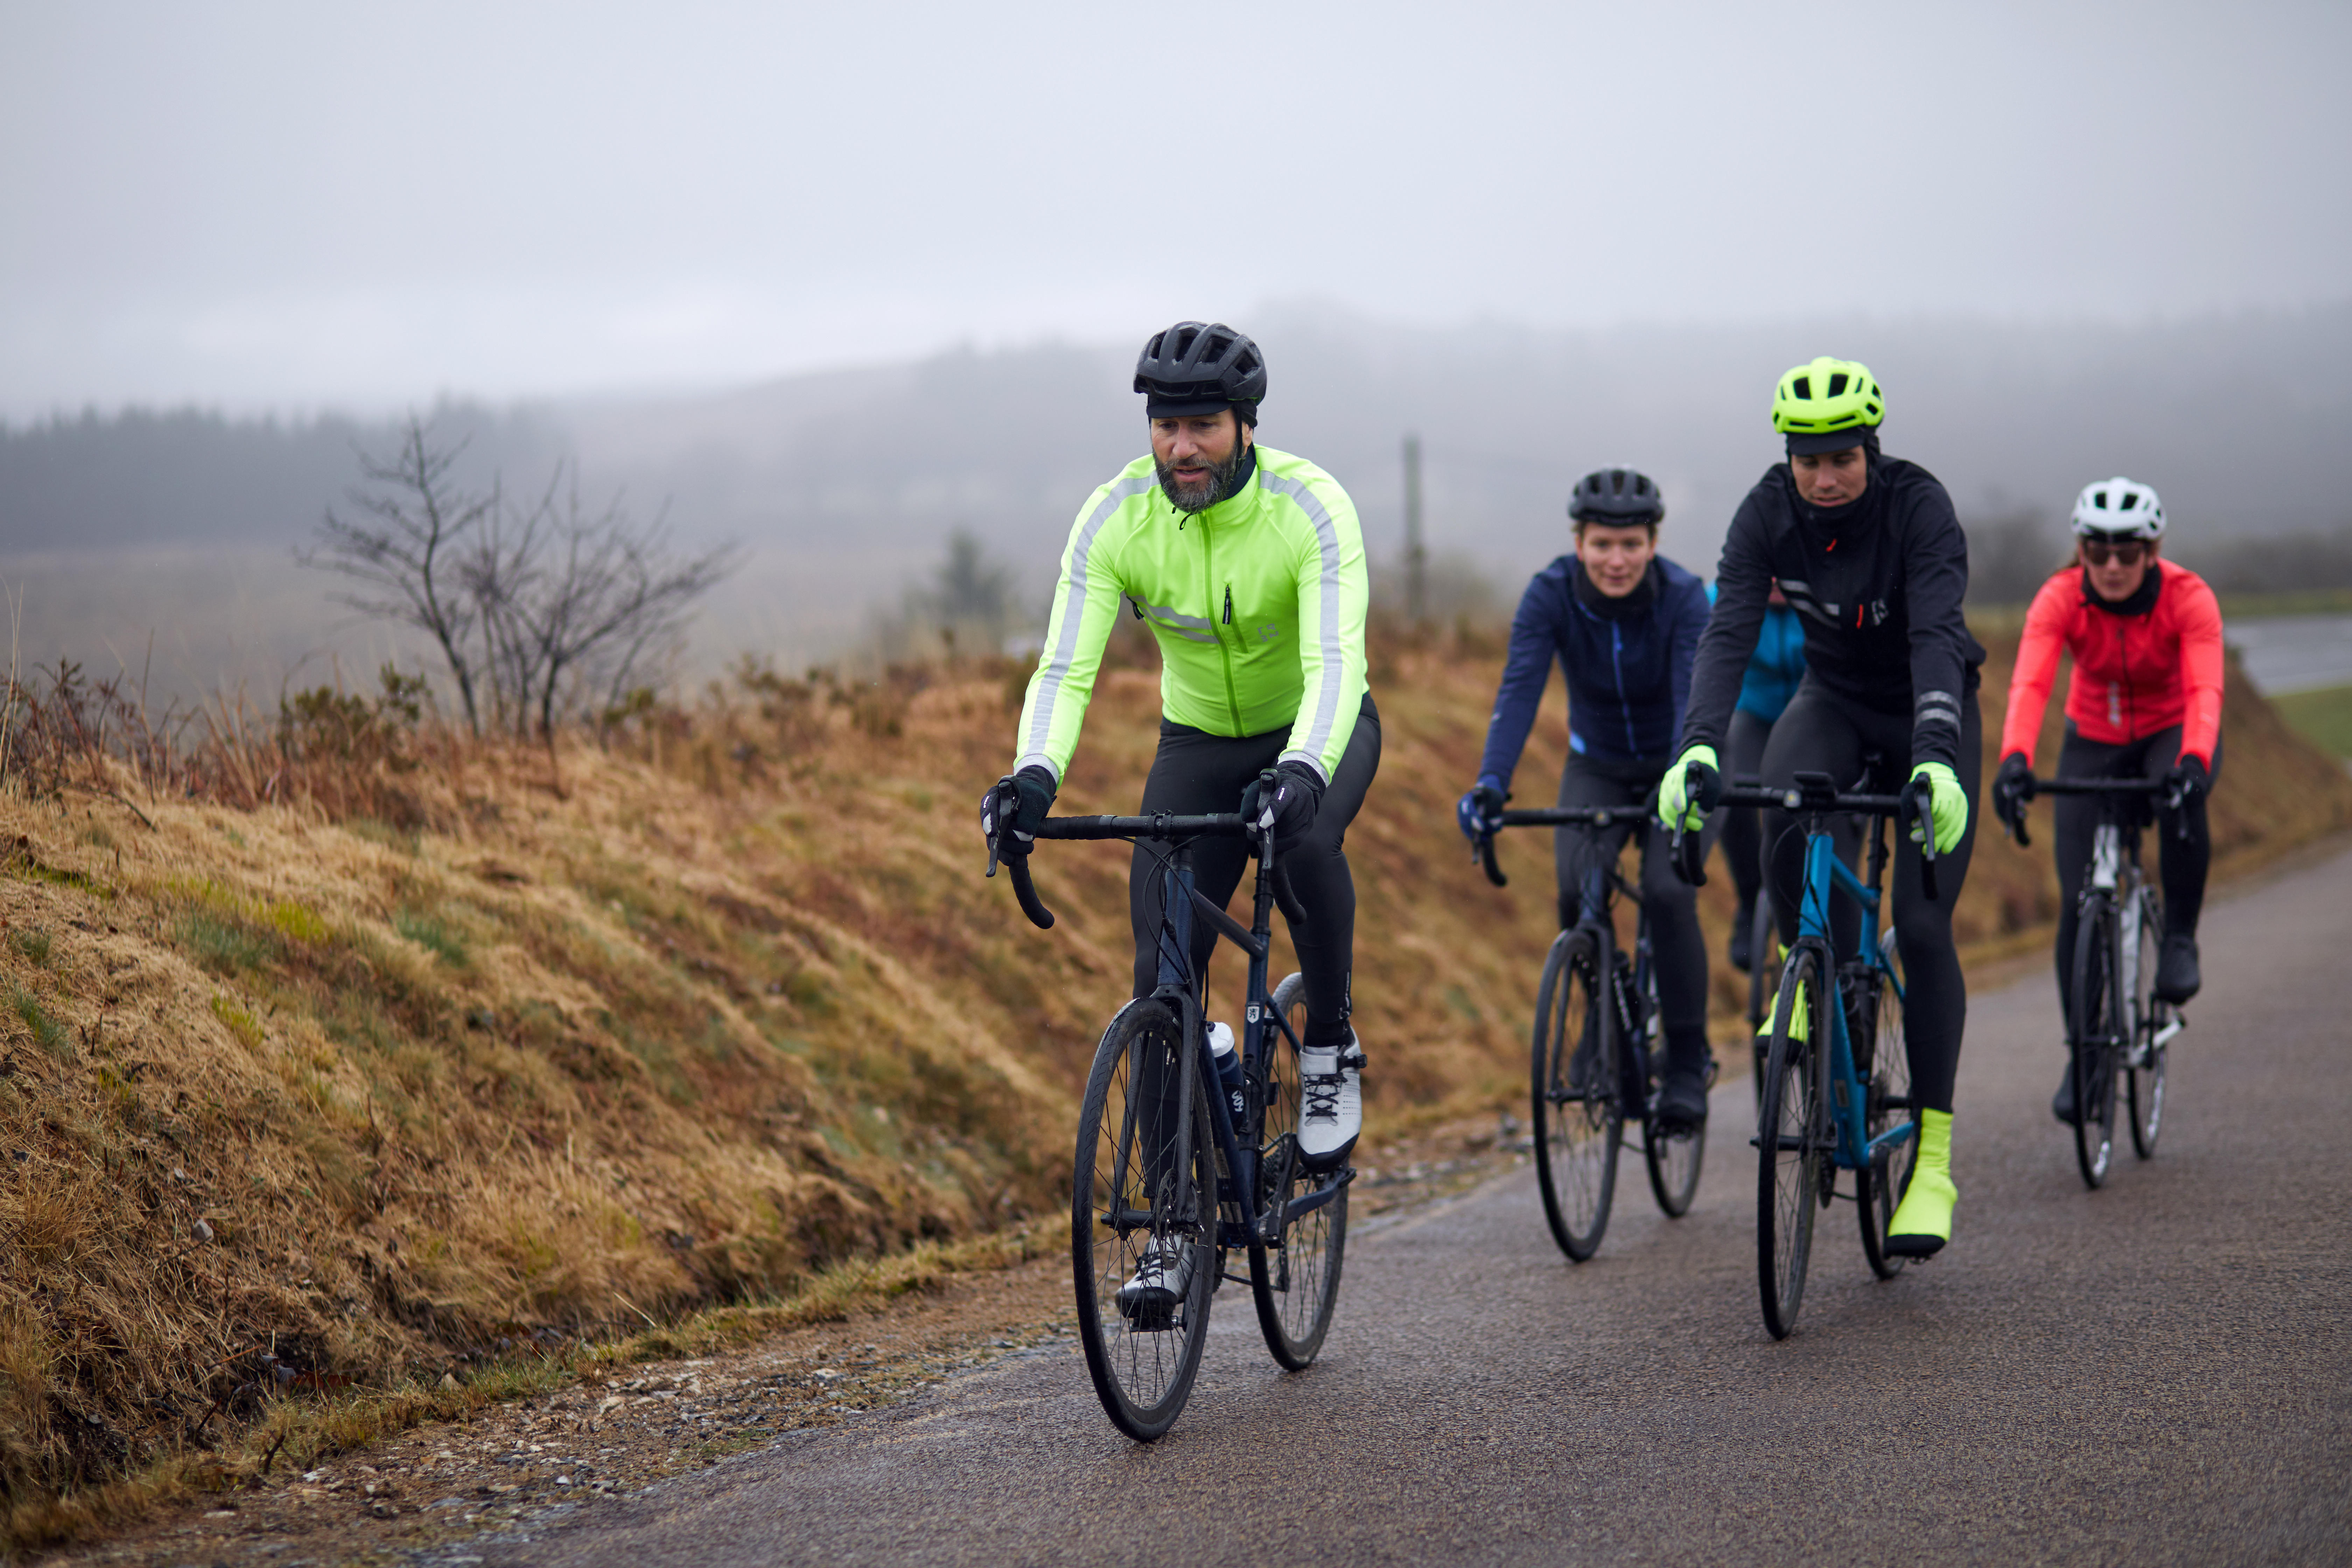 velo route temps froid